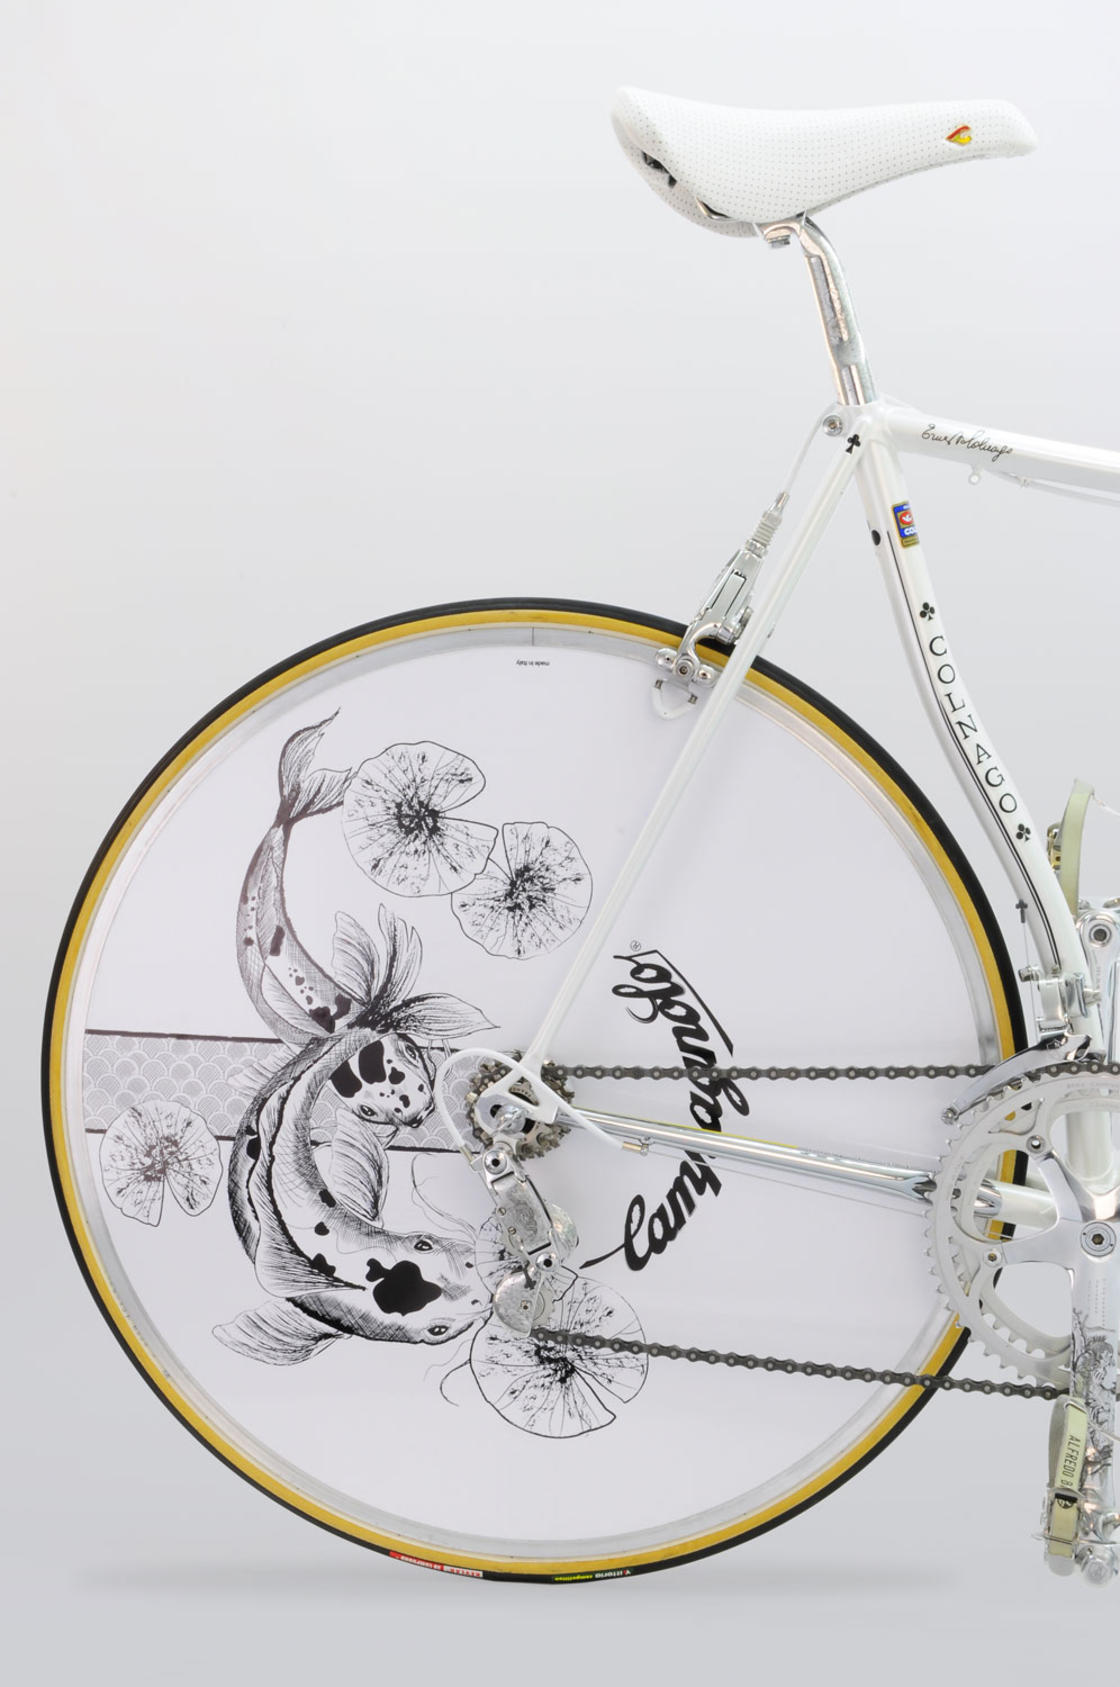 Master Krono – A luxurious bike in tribute to Japanese art